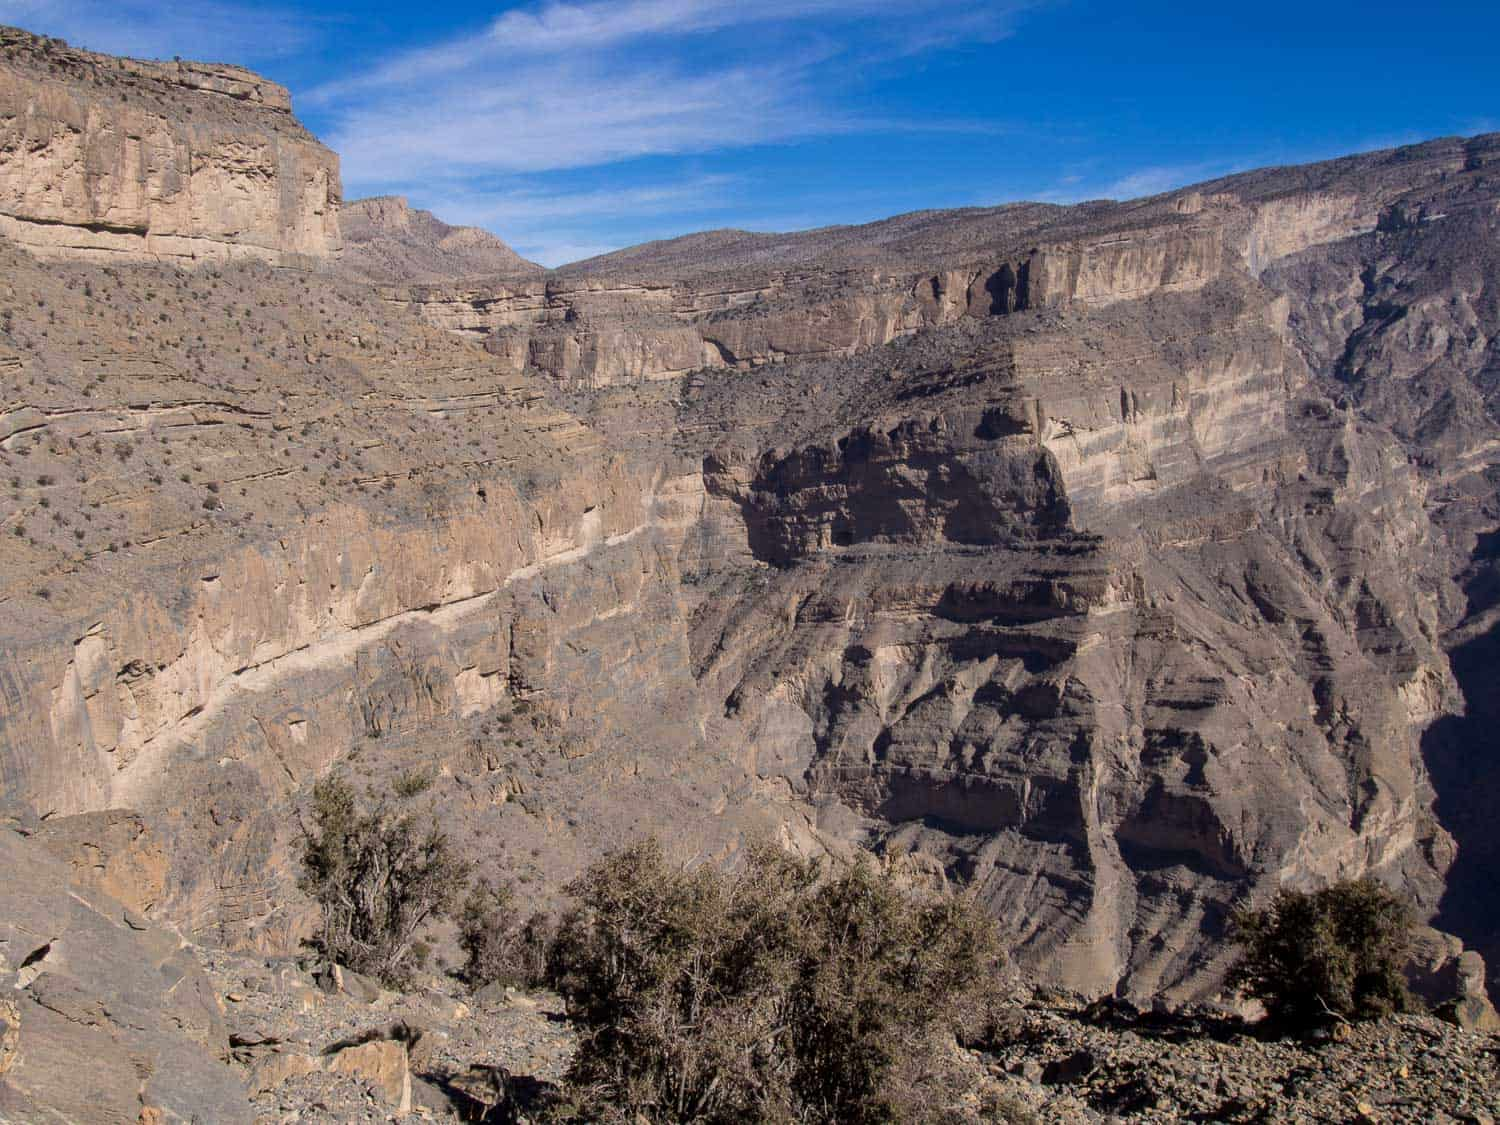 The view on the Balcony Walk at Jebel Shams, one of the best things to do in Oman